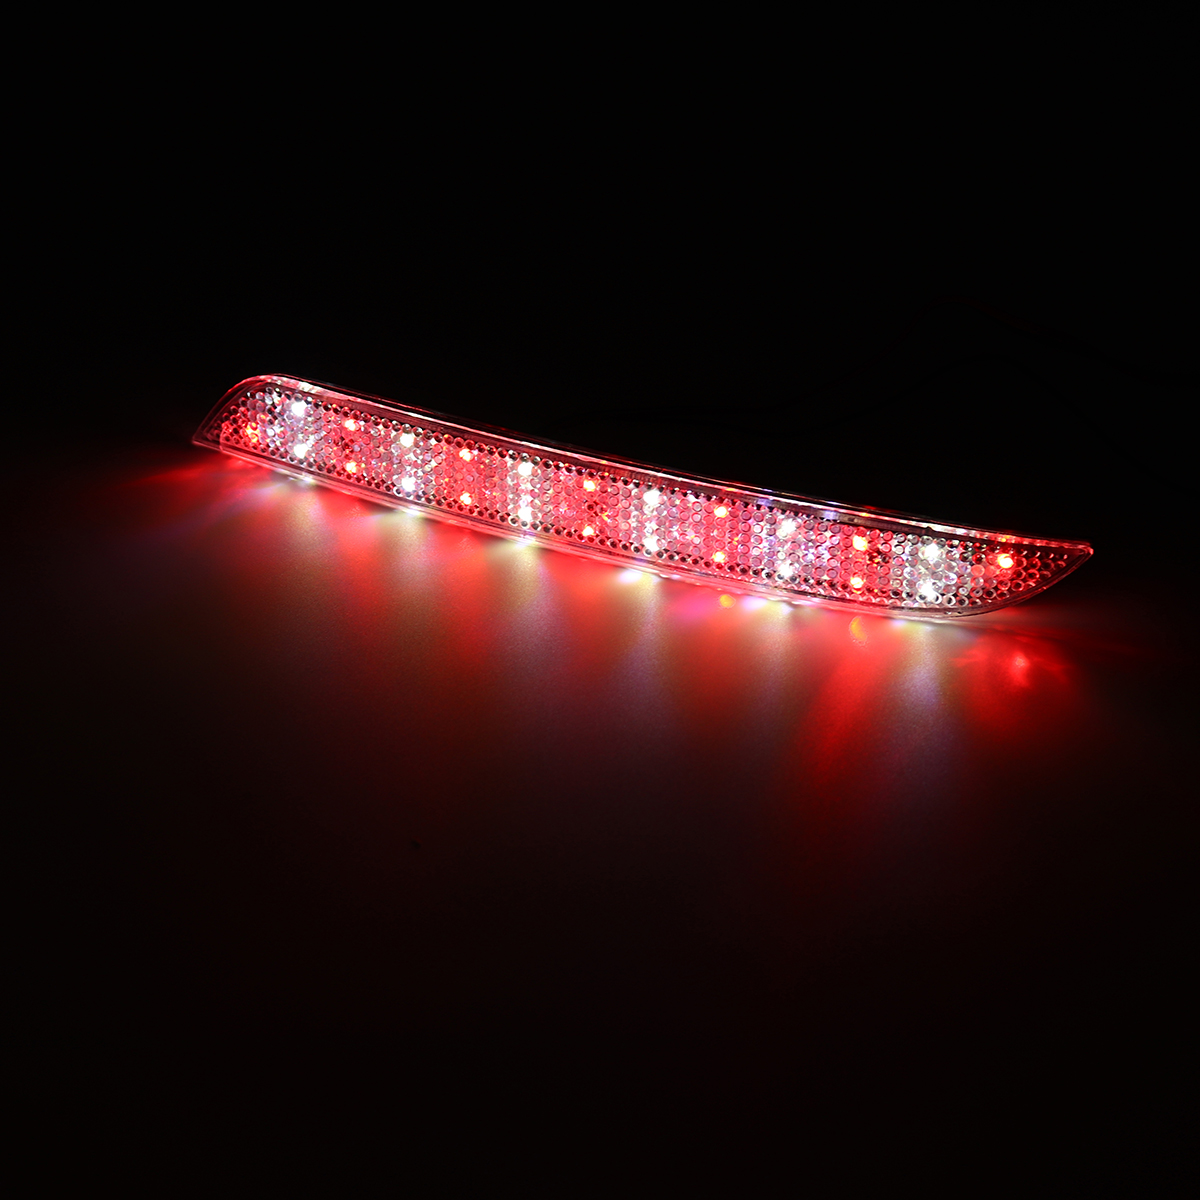 LED Rear Brake Bumper Lights For BMW F10 F11 F18 520d 520i 528i